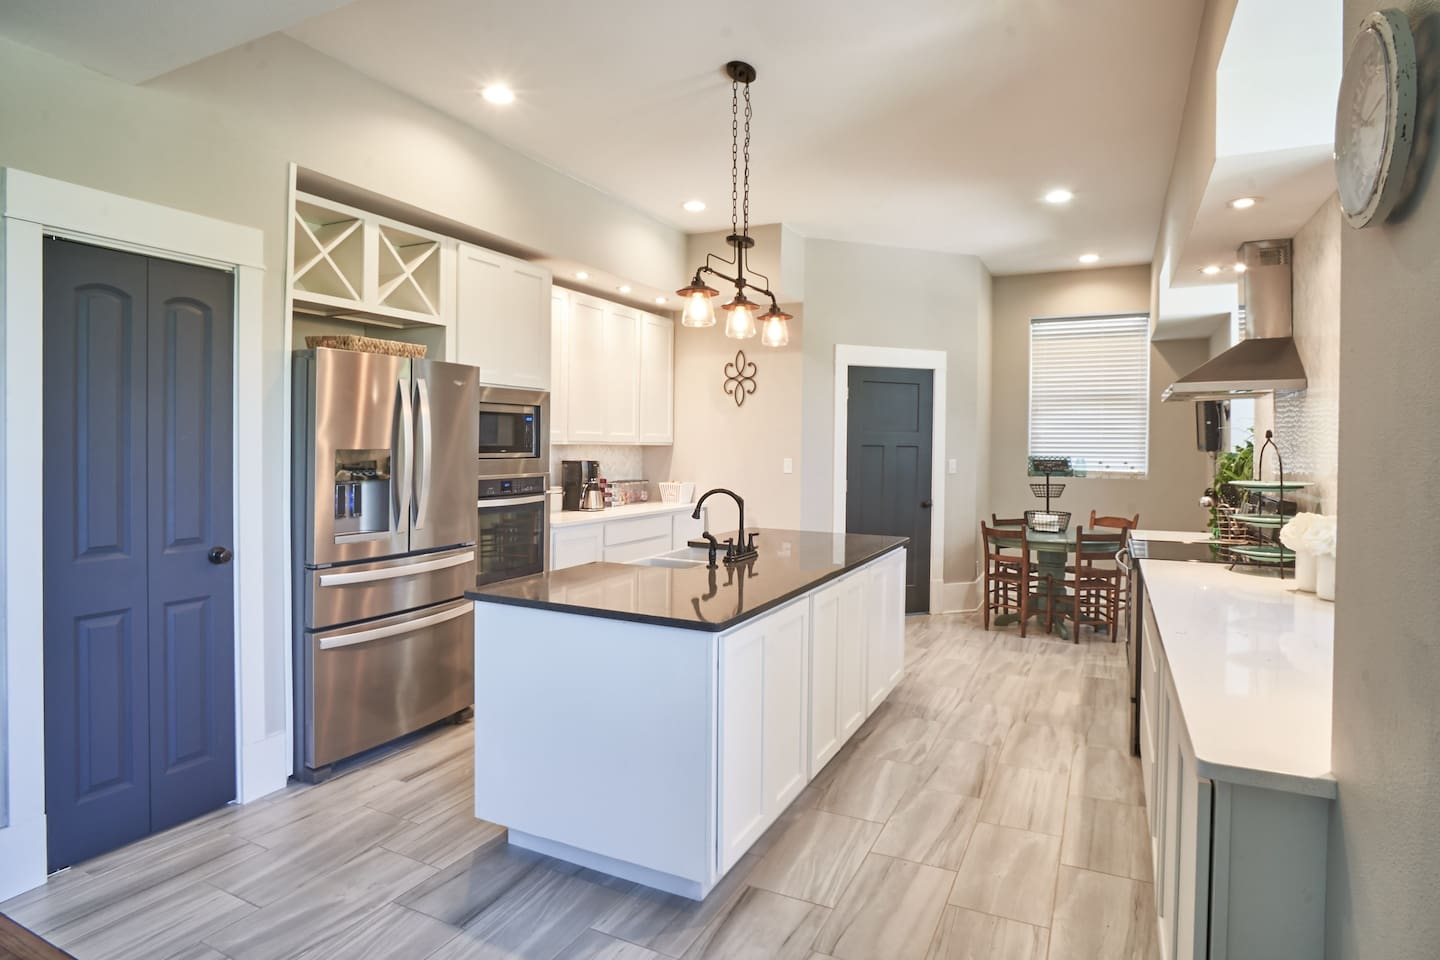 Fully updated kitchen!  Two ovens, stove top, sink island and much more!